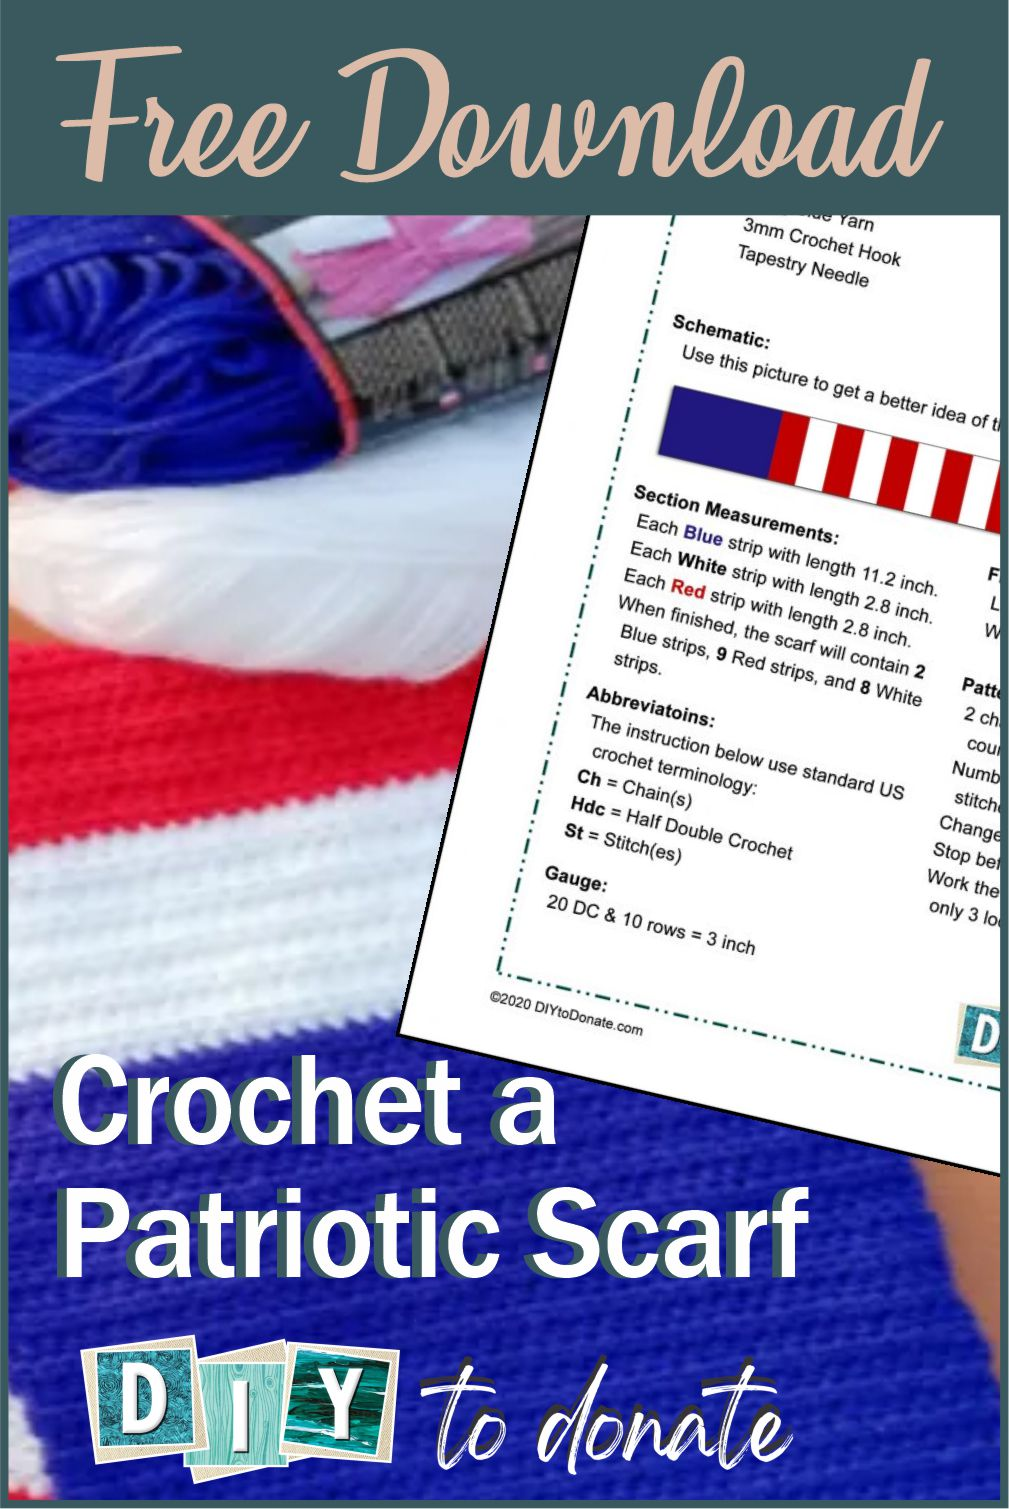 Easy patriotic scarf with illustrated step-by-step instructions and free printable PDF to download. Find out where to donate your scarves. #diytodonate #scarf #diyscarf #diy #patrioticscarf